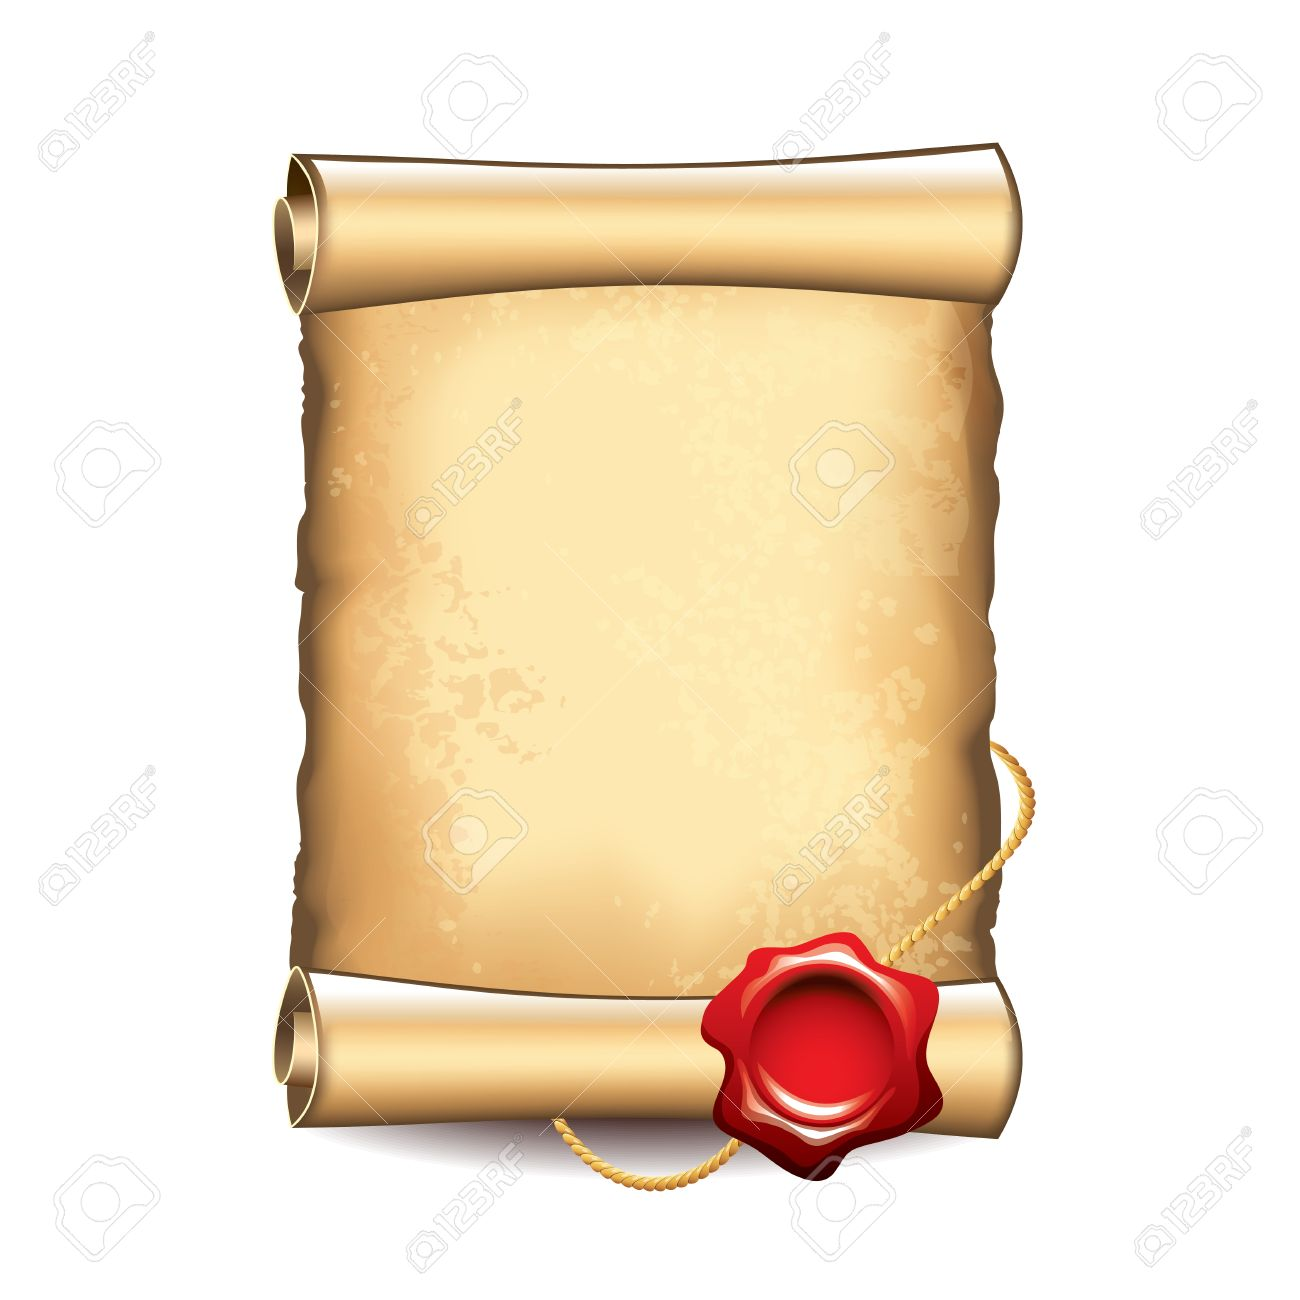 27708922-Old-scroll-with-wax-seal-isolated-vector-illustration-Stock-Vector.jpg